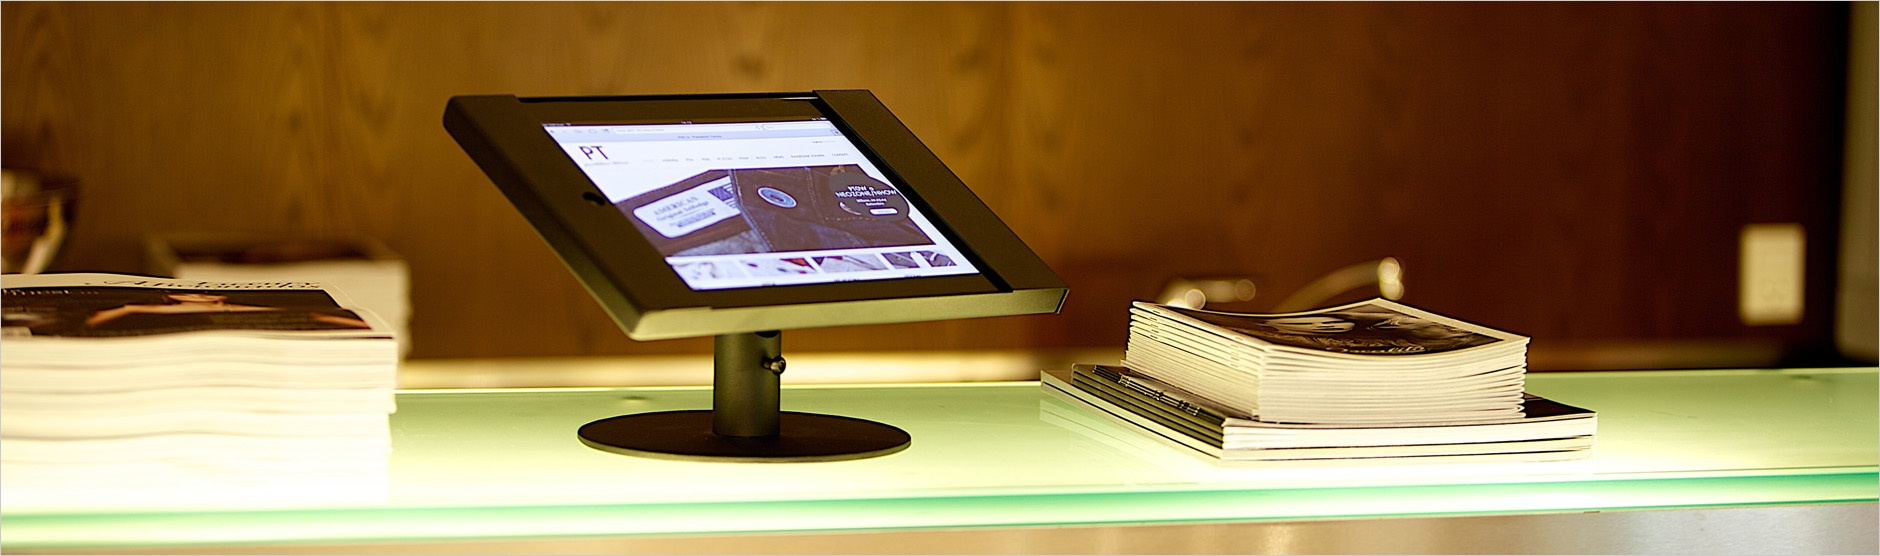 Digital visitor management app on reception desk